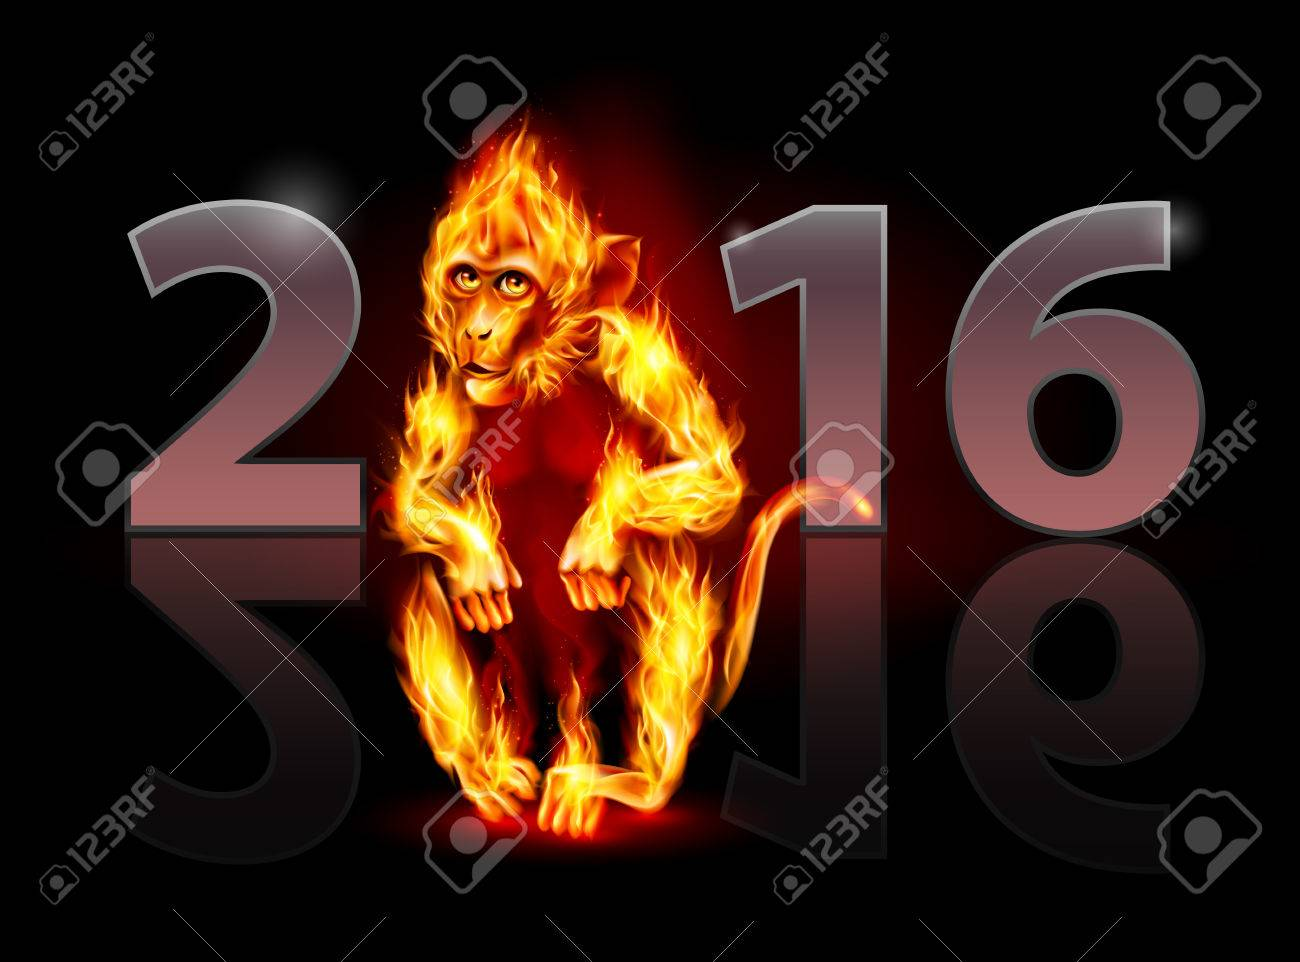 http://previews.123rf.com/images/dvarg/dvarg1509/dvarg150900071/45734038-Year-Of-The-Red-Fire-Monkey-Greeting-Card-on-black-background-for-design-Stock-Vector.jpg